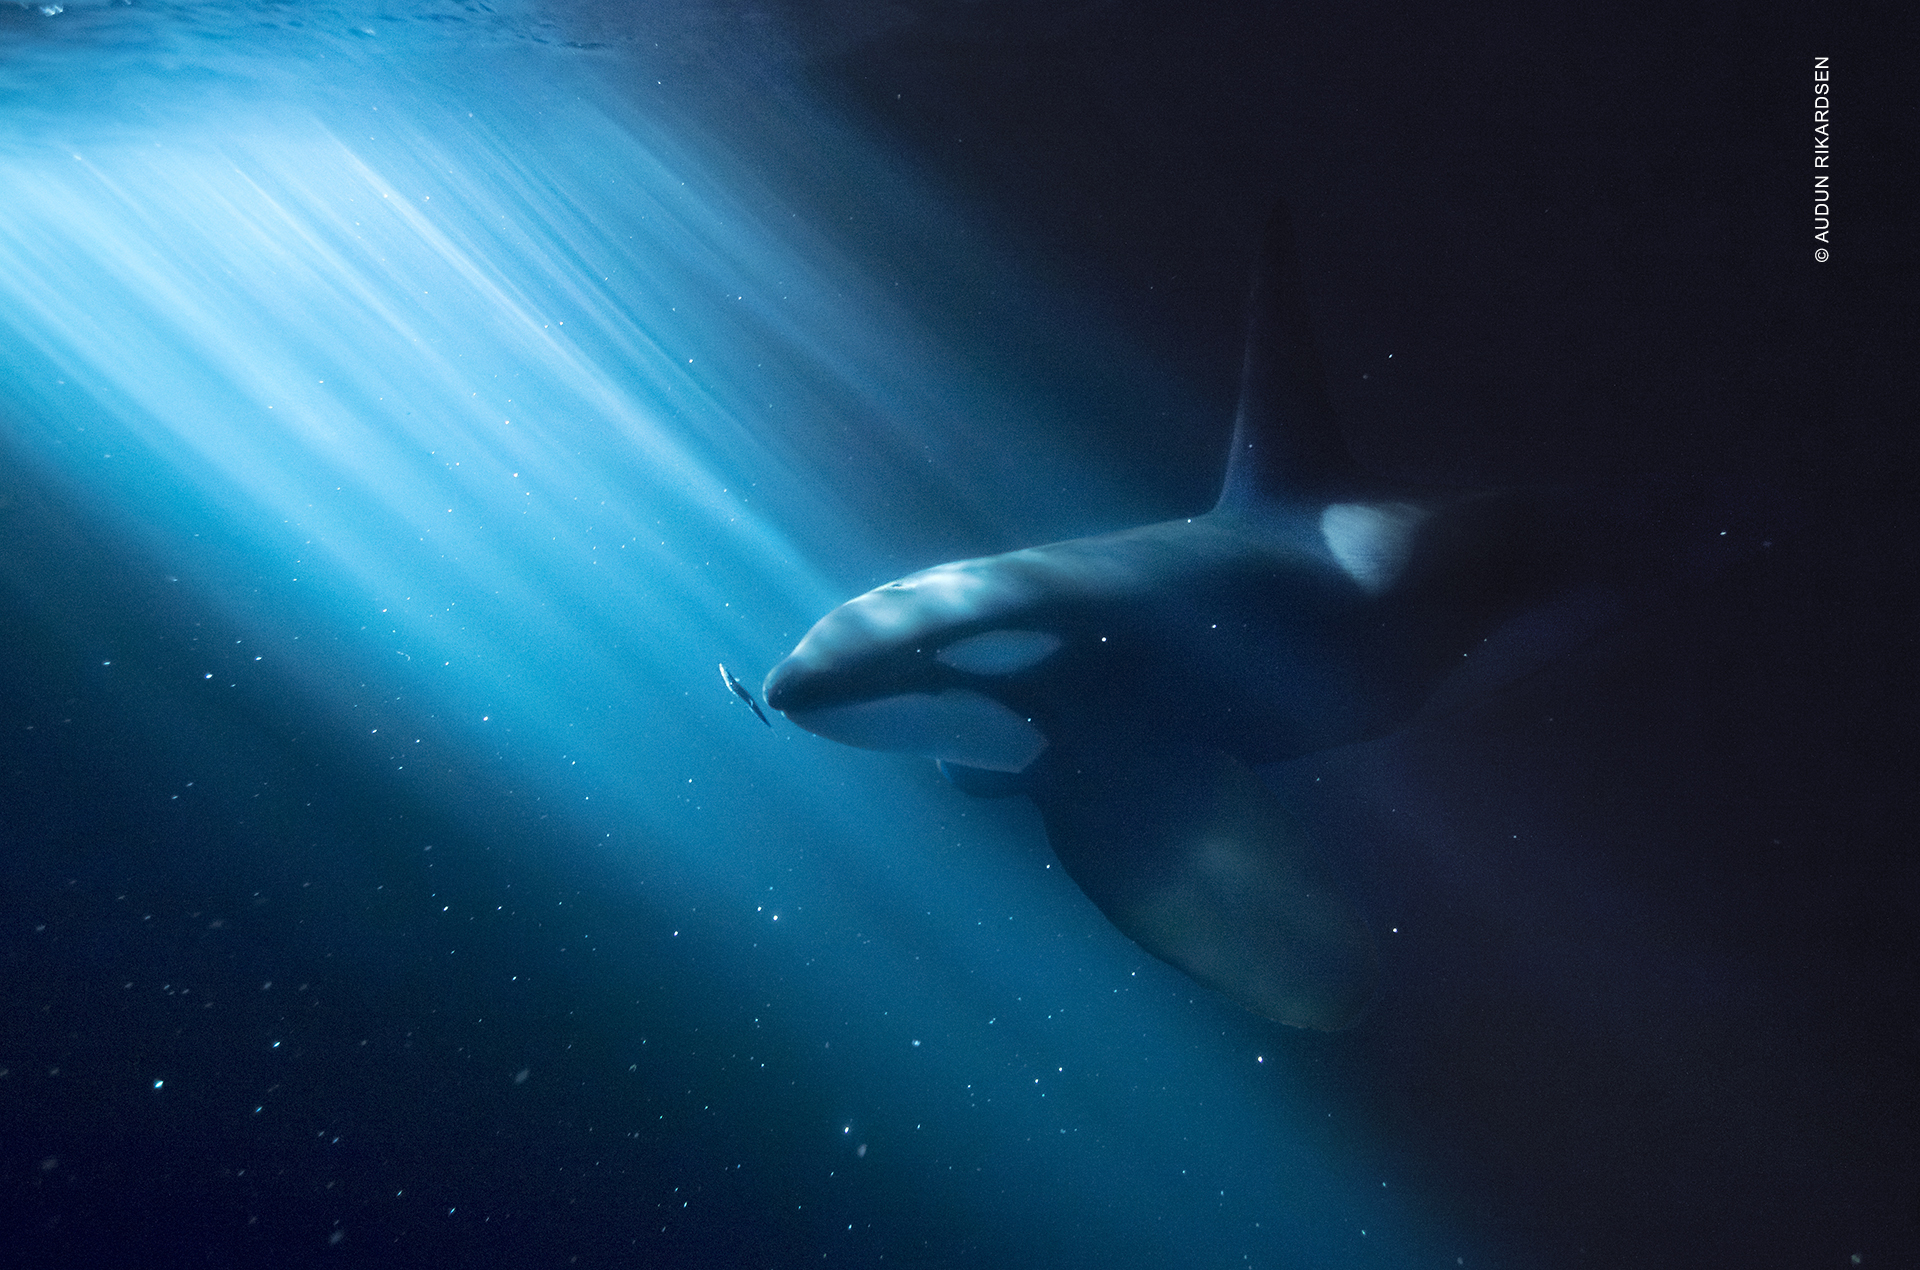 Orca Wallpaper Screensaver Wildlife Photography Exhibit At